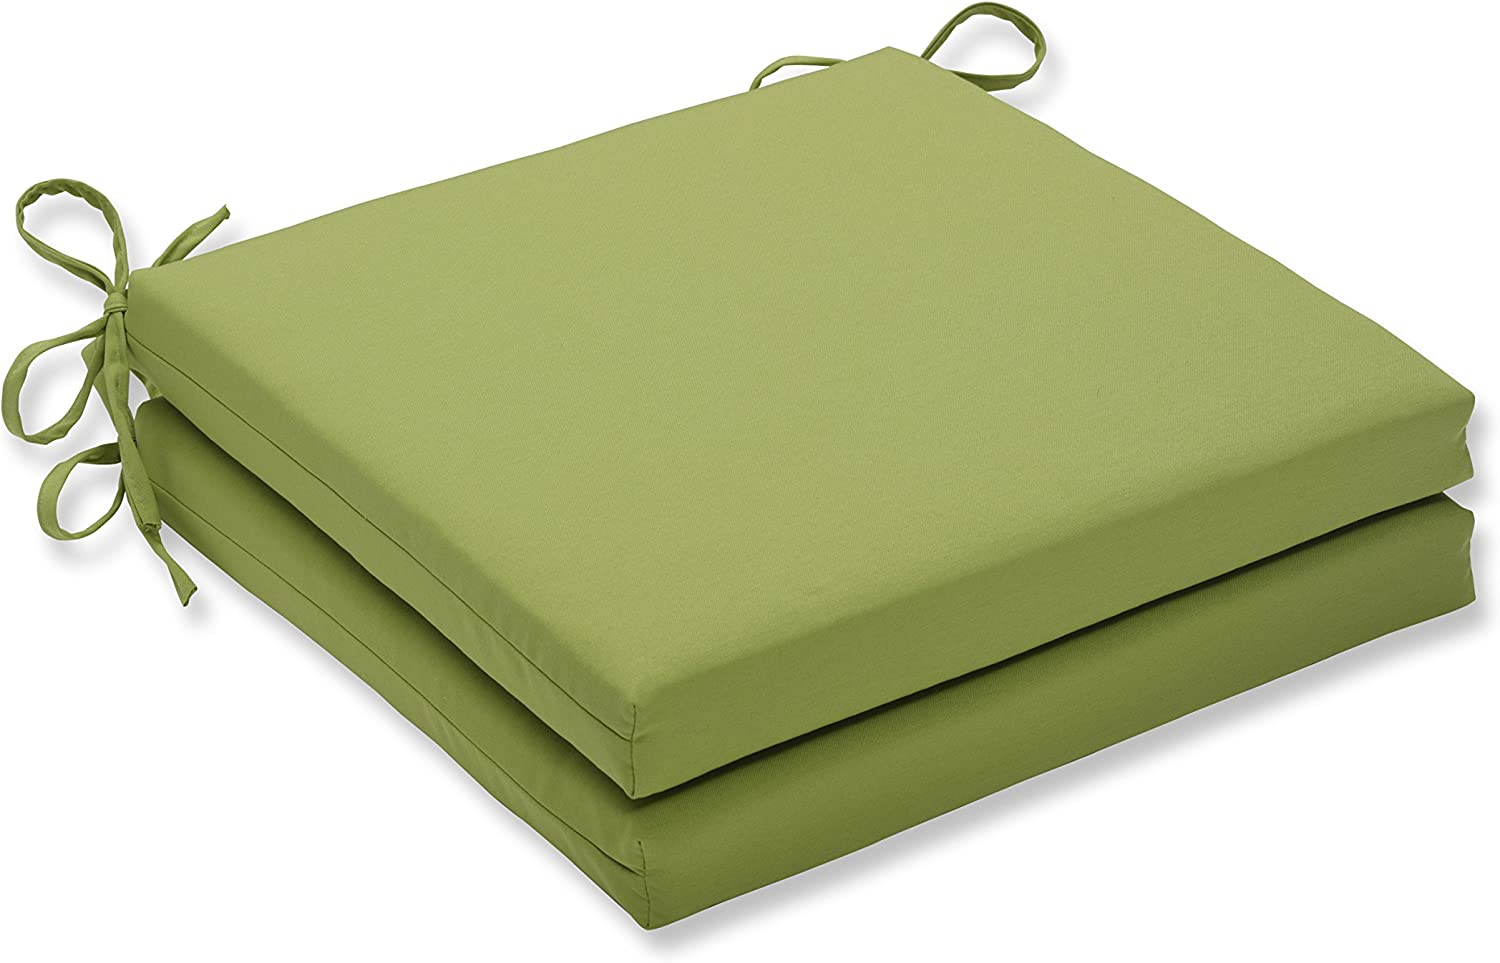 Pillow Perfect Outdoor/Indoor Fresco Pear Squared Corners Seat Cushion 20x20x3 (Set of 2),Green